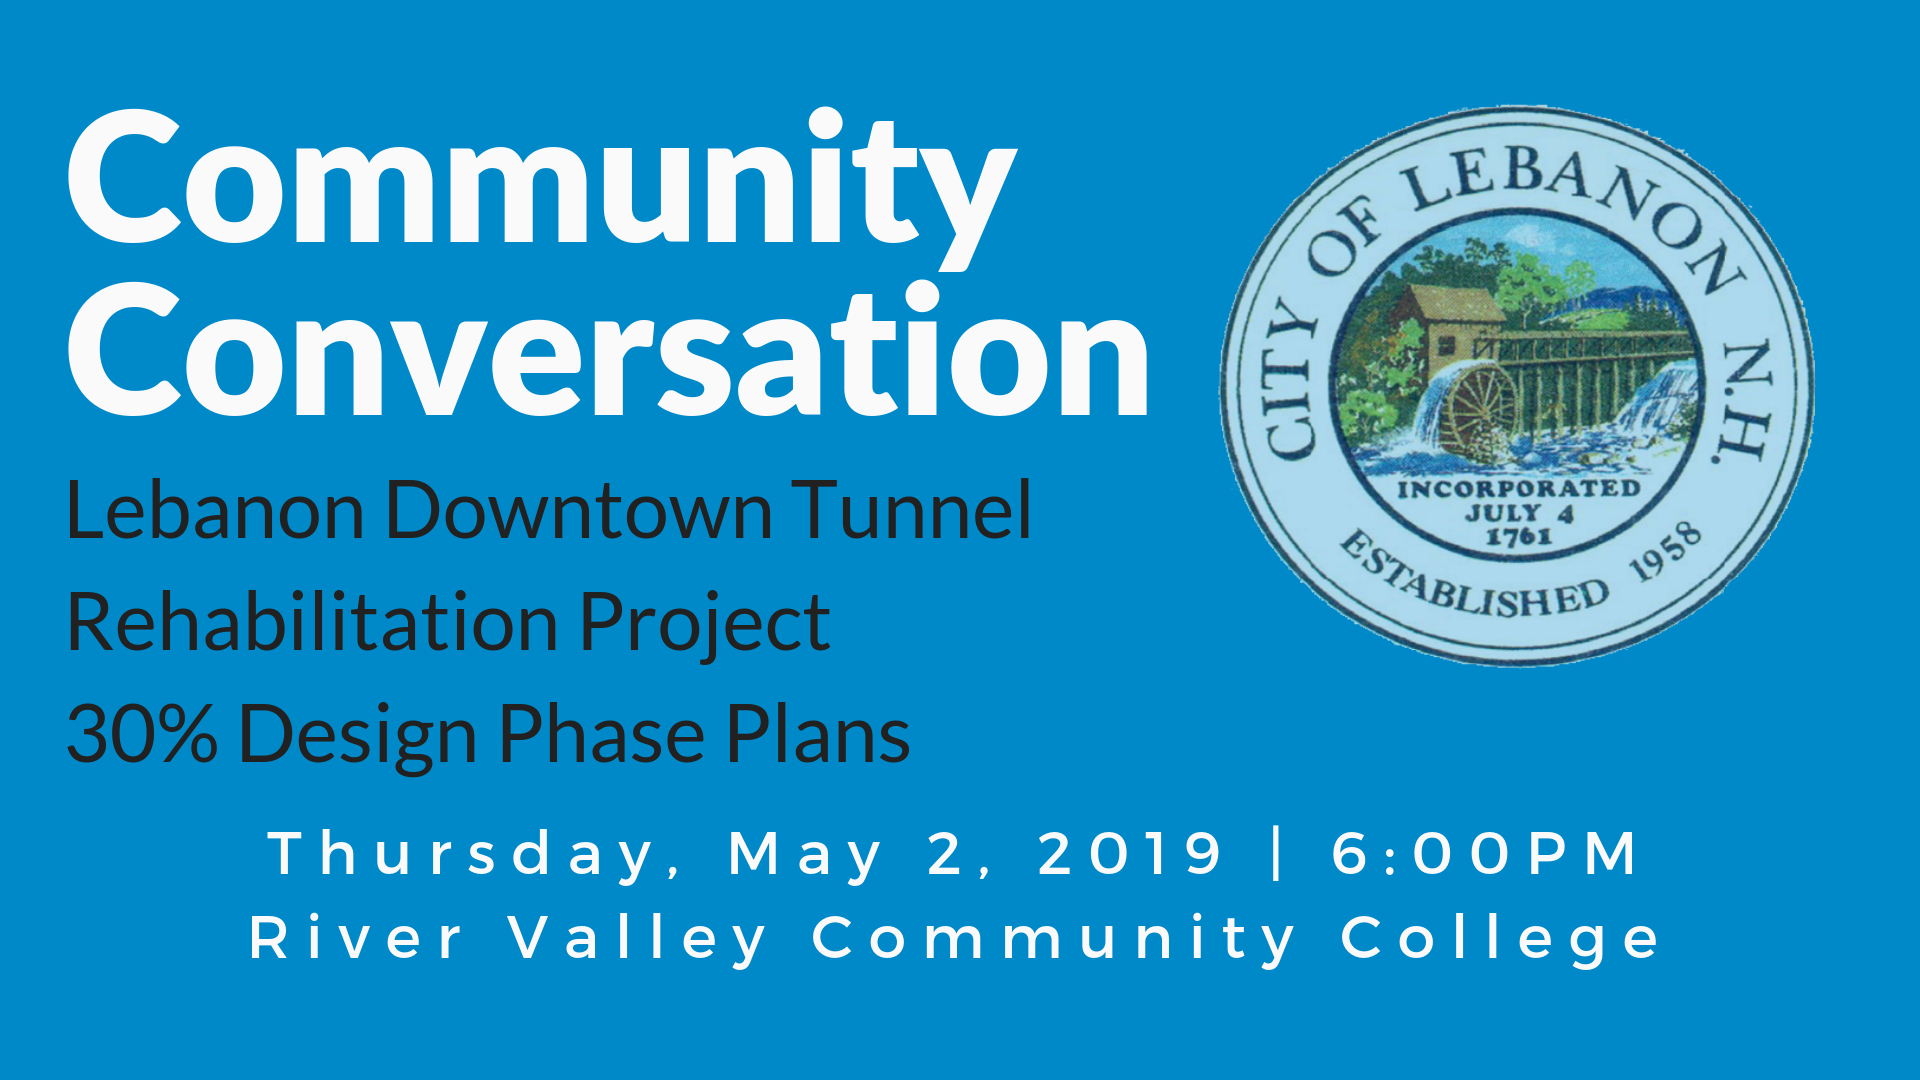 Lebanon Tunnel Rehabilitation Community Conversation Notice